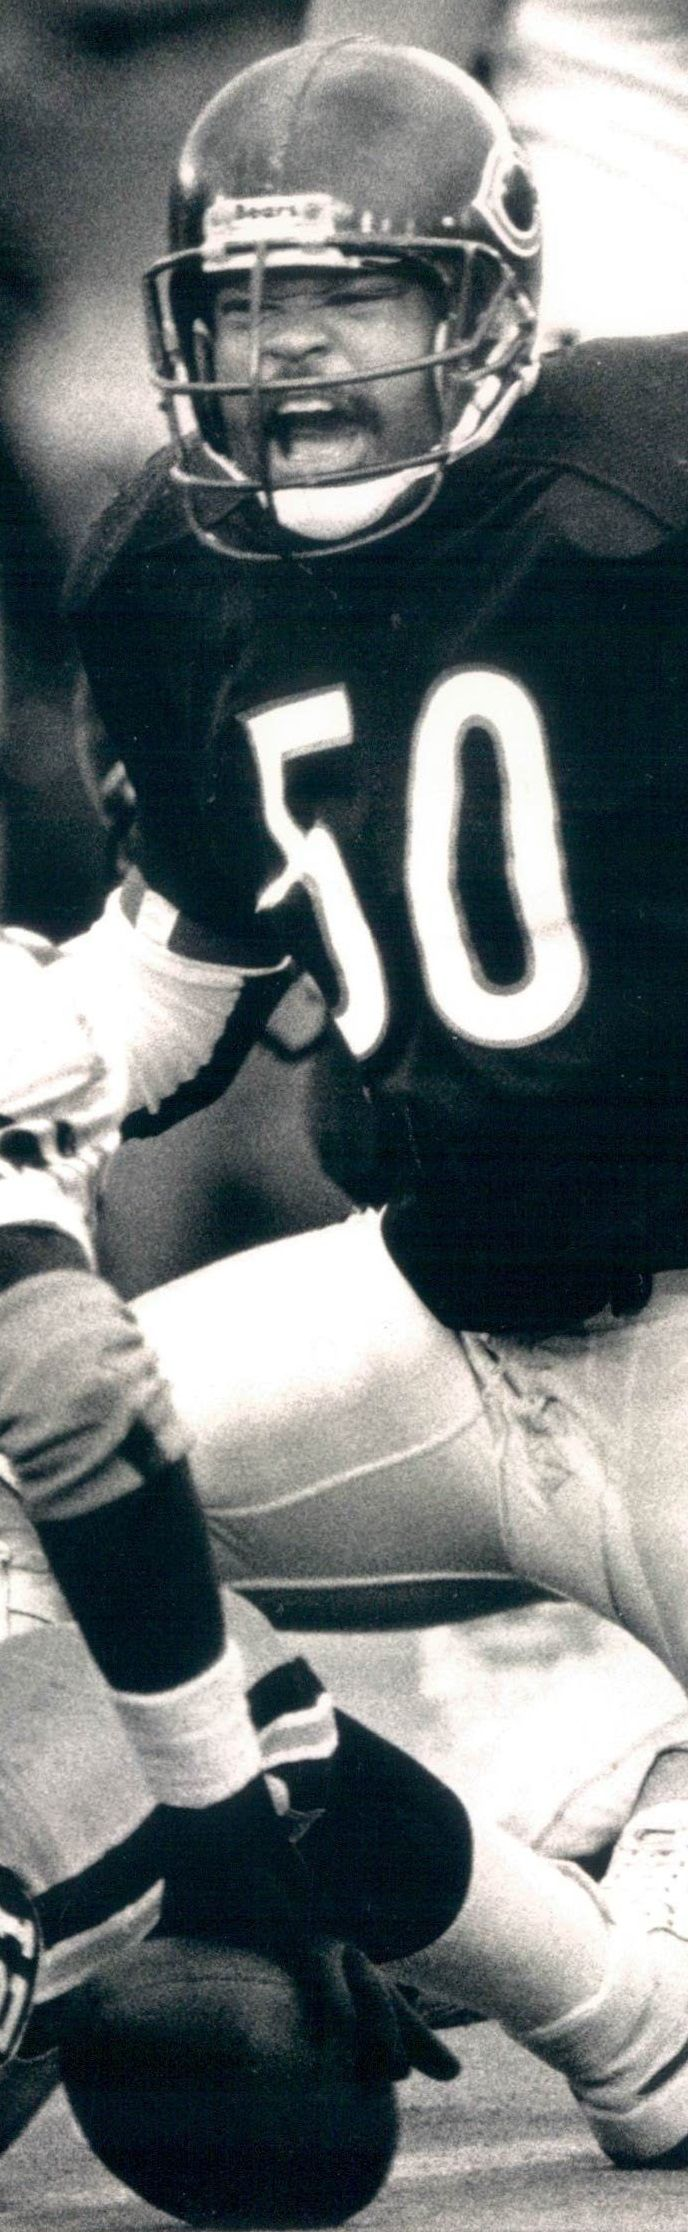 Mike Singletary #bears #85bears #chicago  #midway #football #NFL